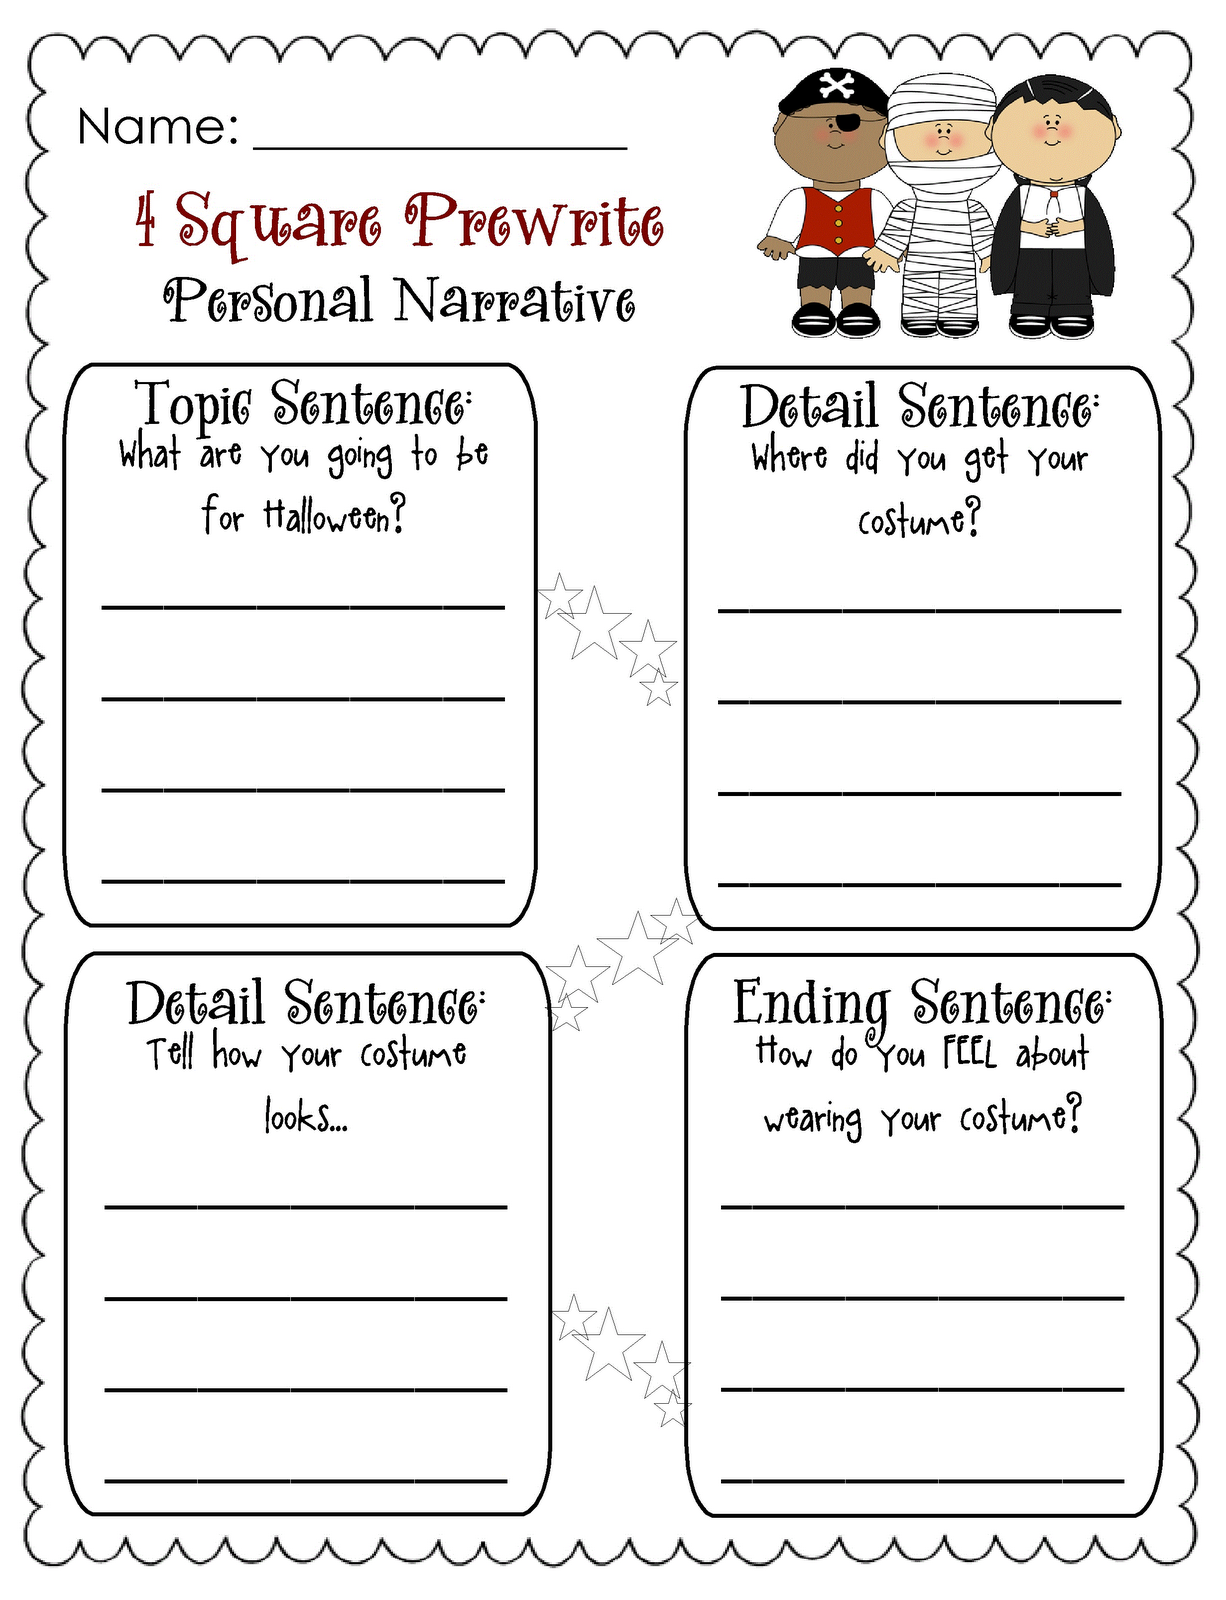 Worksheets Four Square Writing Worksheets 52 best four square writing images on pinterest teaching ideas and ideas